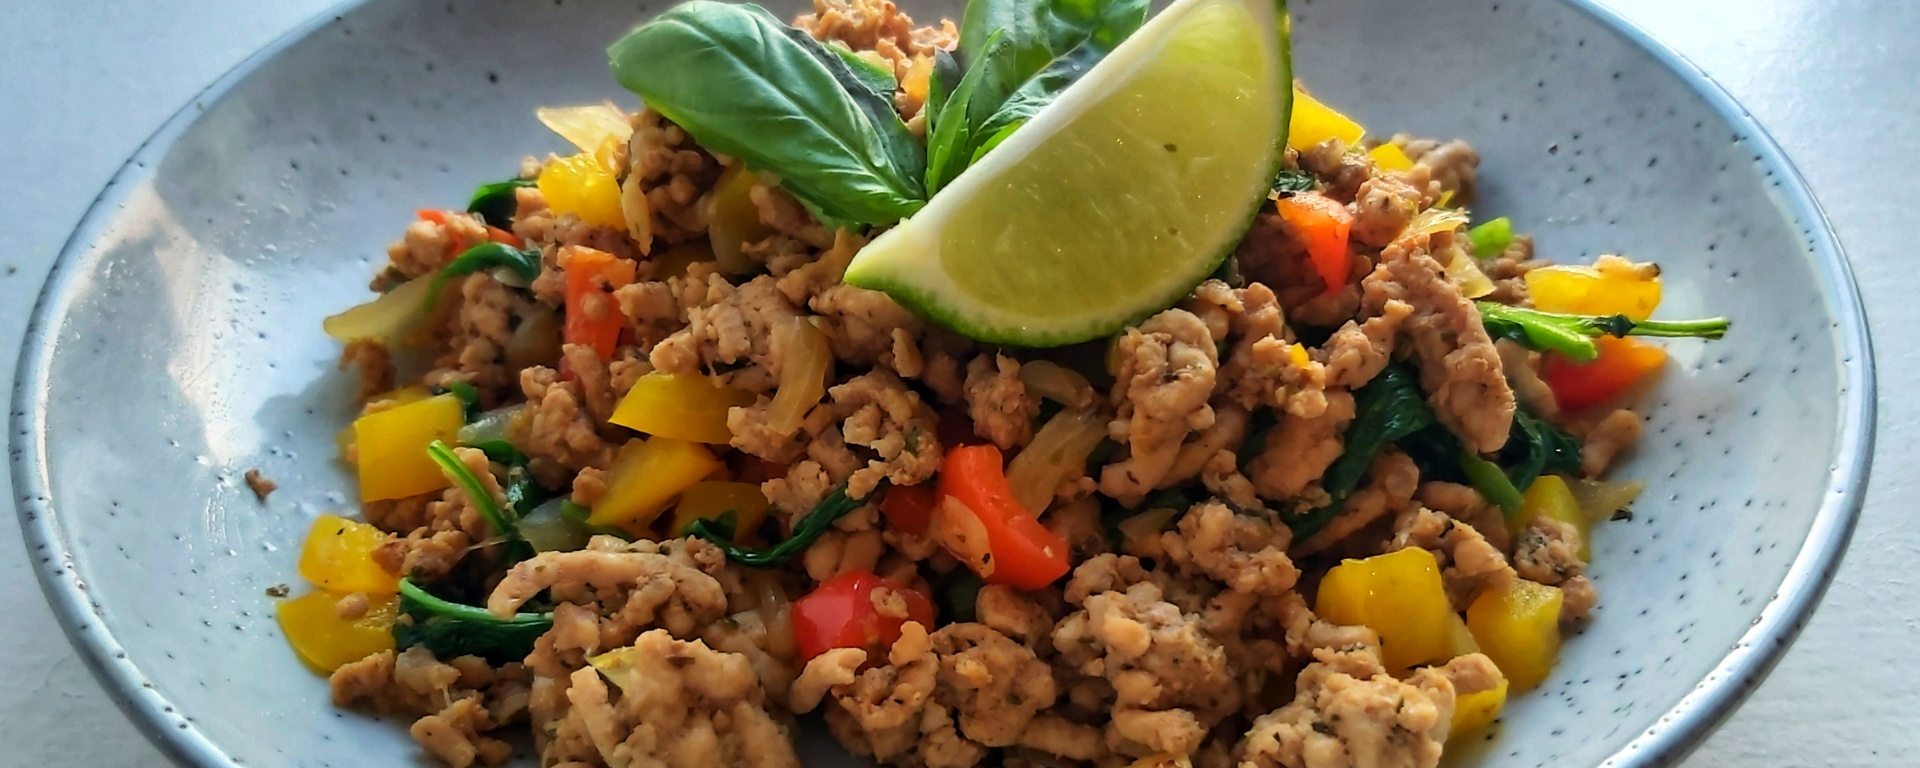 Zesty Thai Basil Pork on a plate, garnished with basil and lime